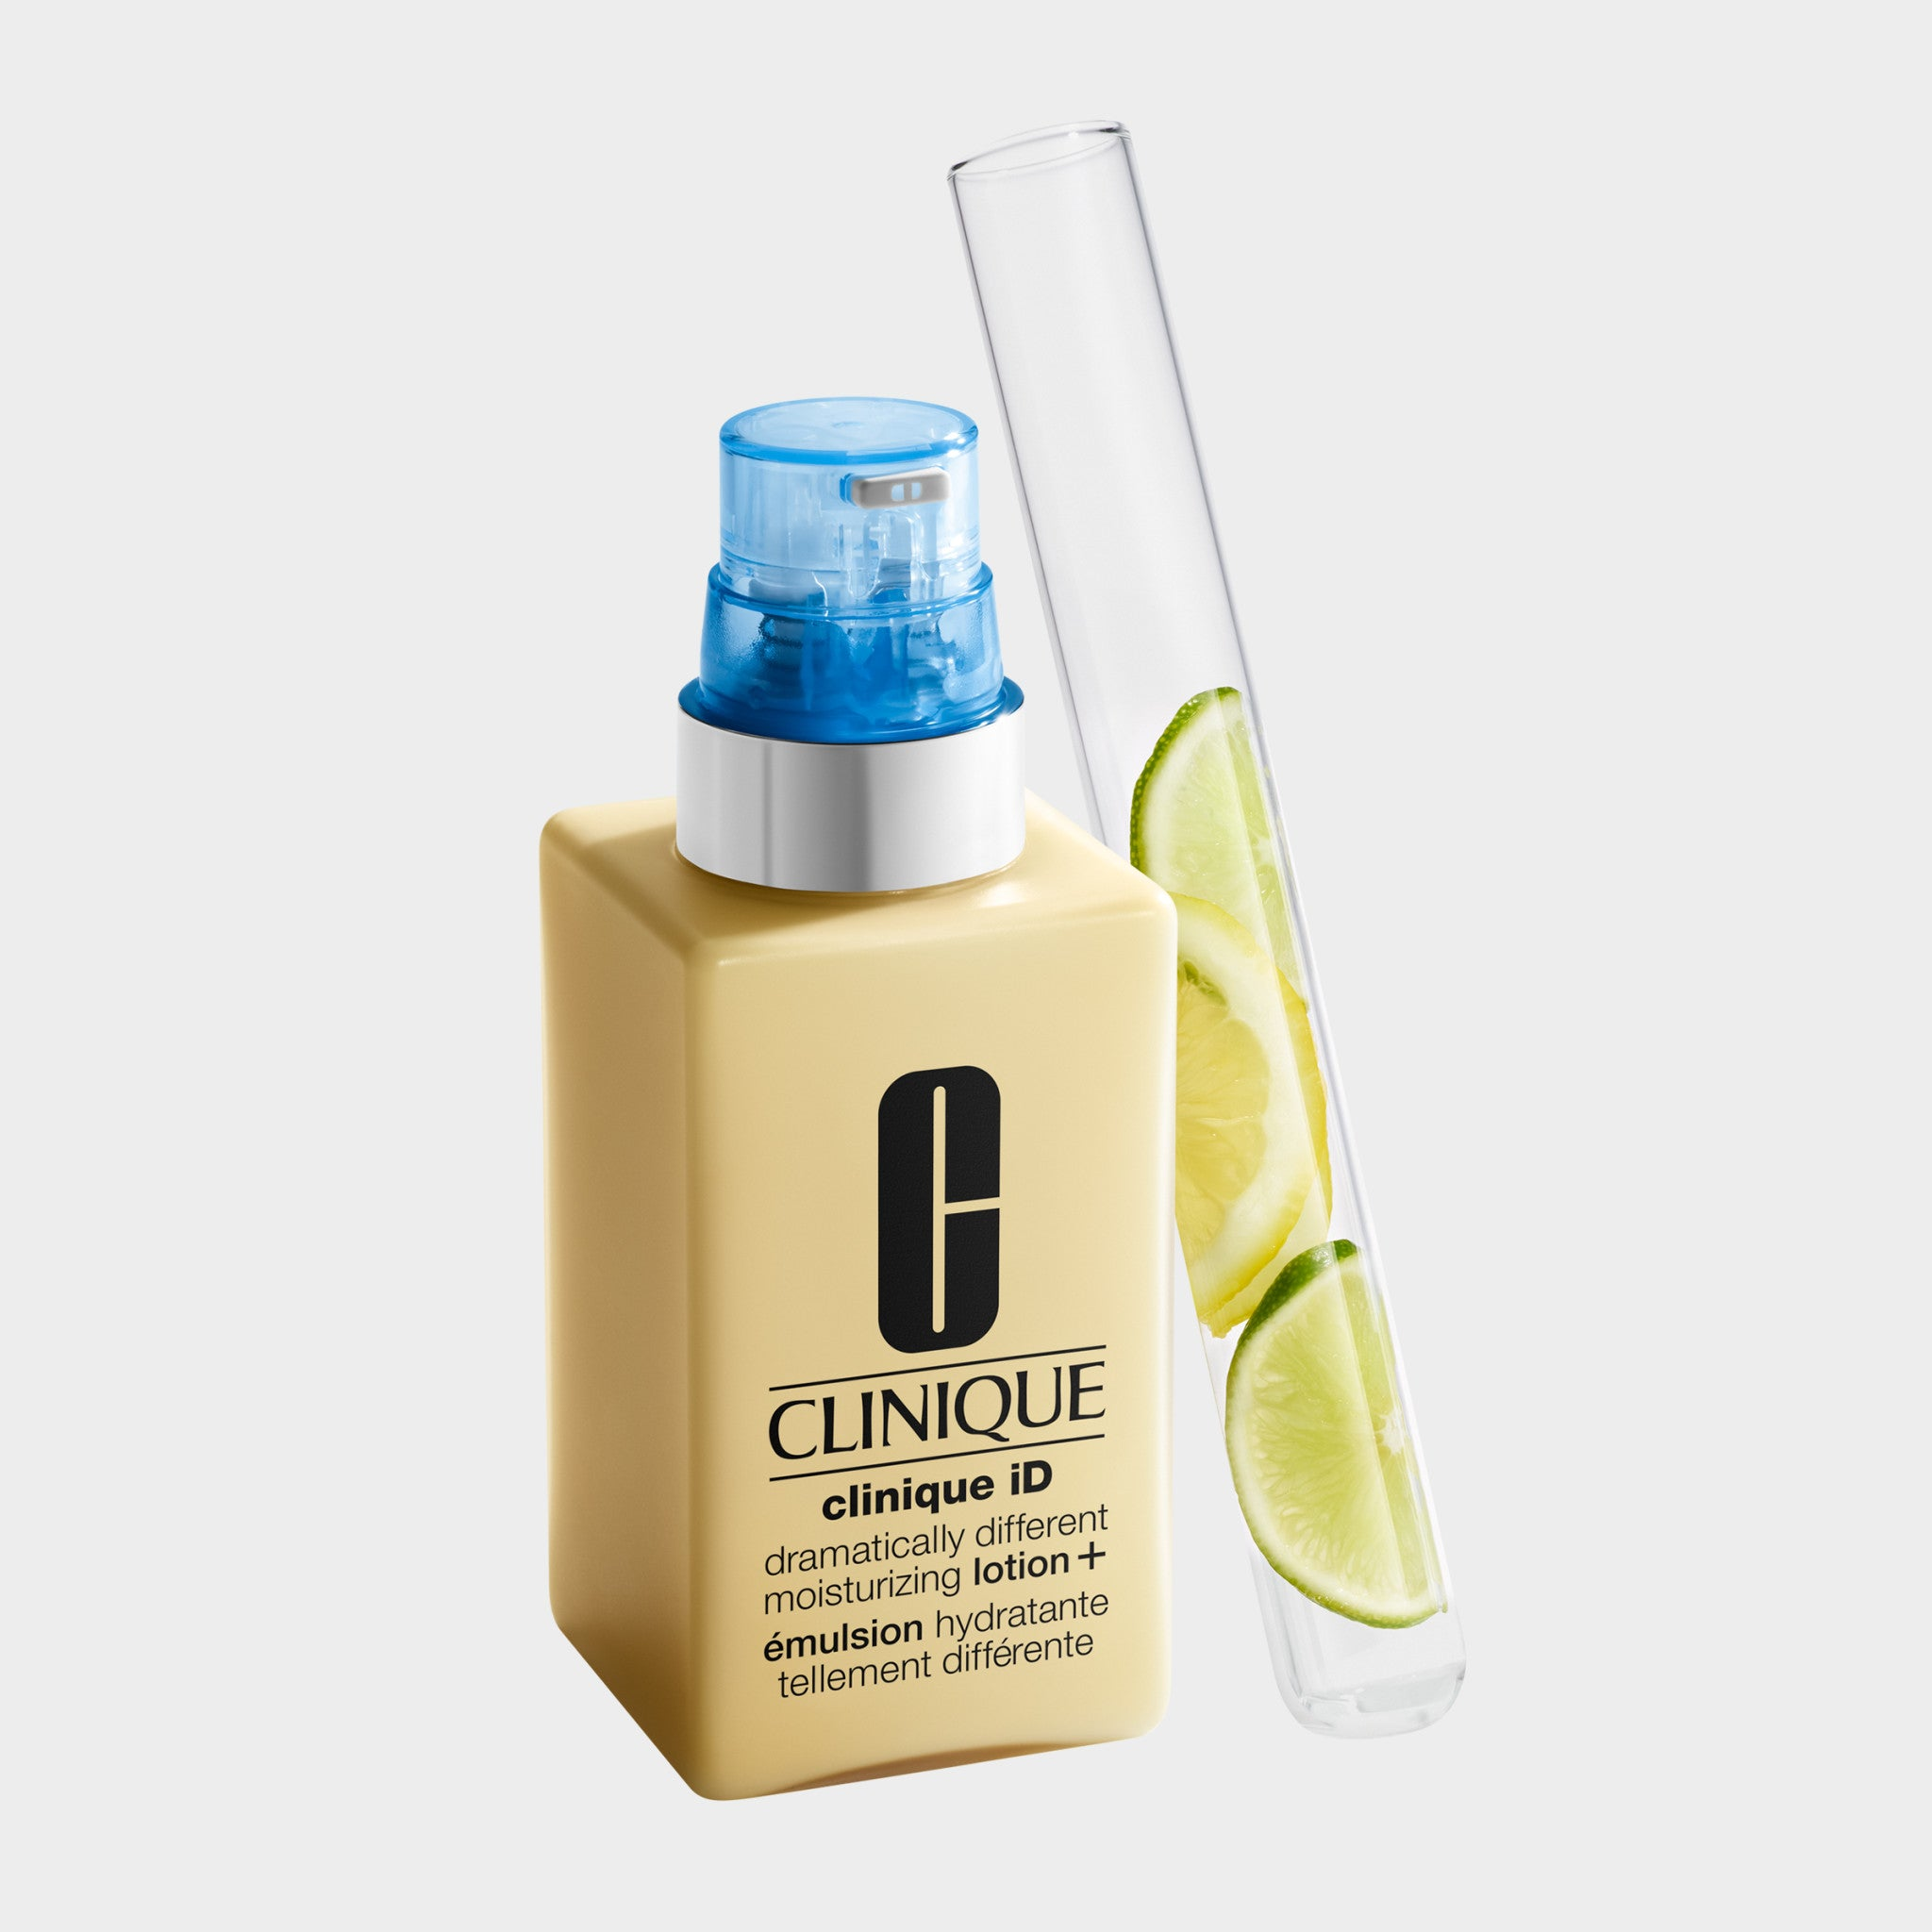 Clinique iD™: Dramatically Different Moisturizing Lotion+™ + Active Cartridge Concentrate for Pores & Uneven Texture